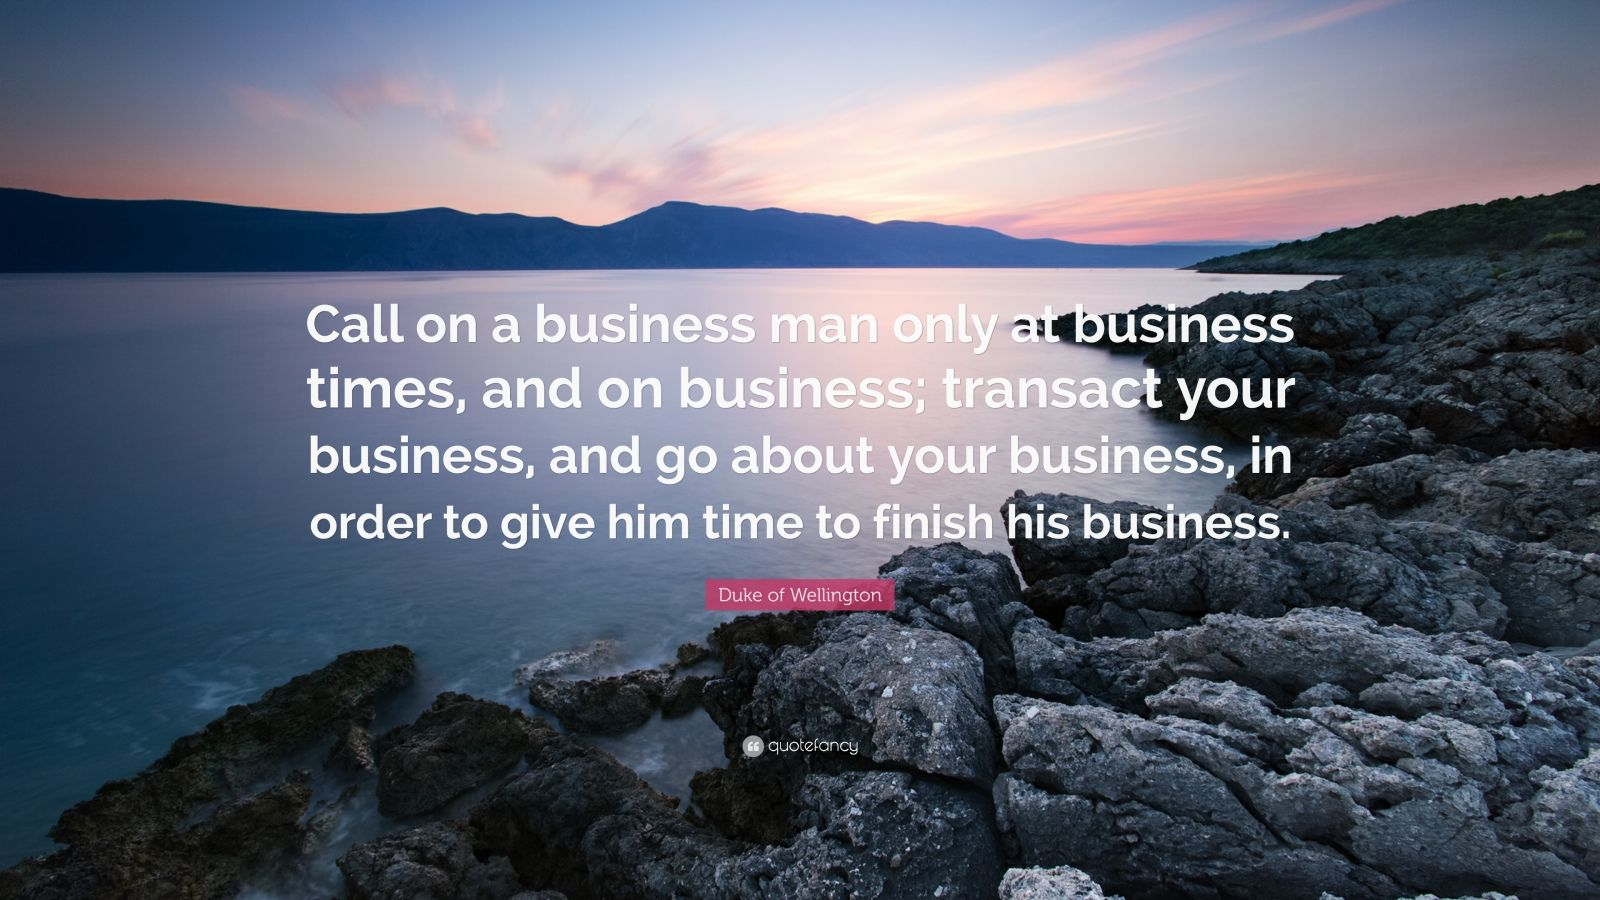 """Duke of Wellington Quote: """"Call on a business man only at business times, and on business; transact your business, and go about your business, in order to give him time to finish his business."""""""